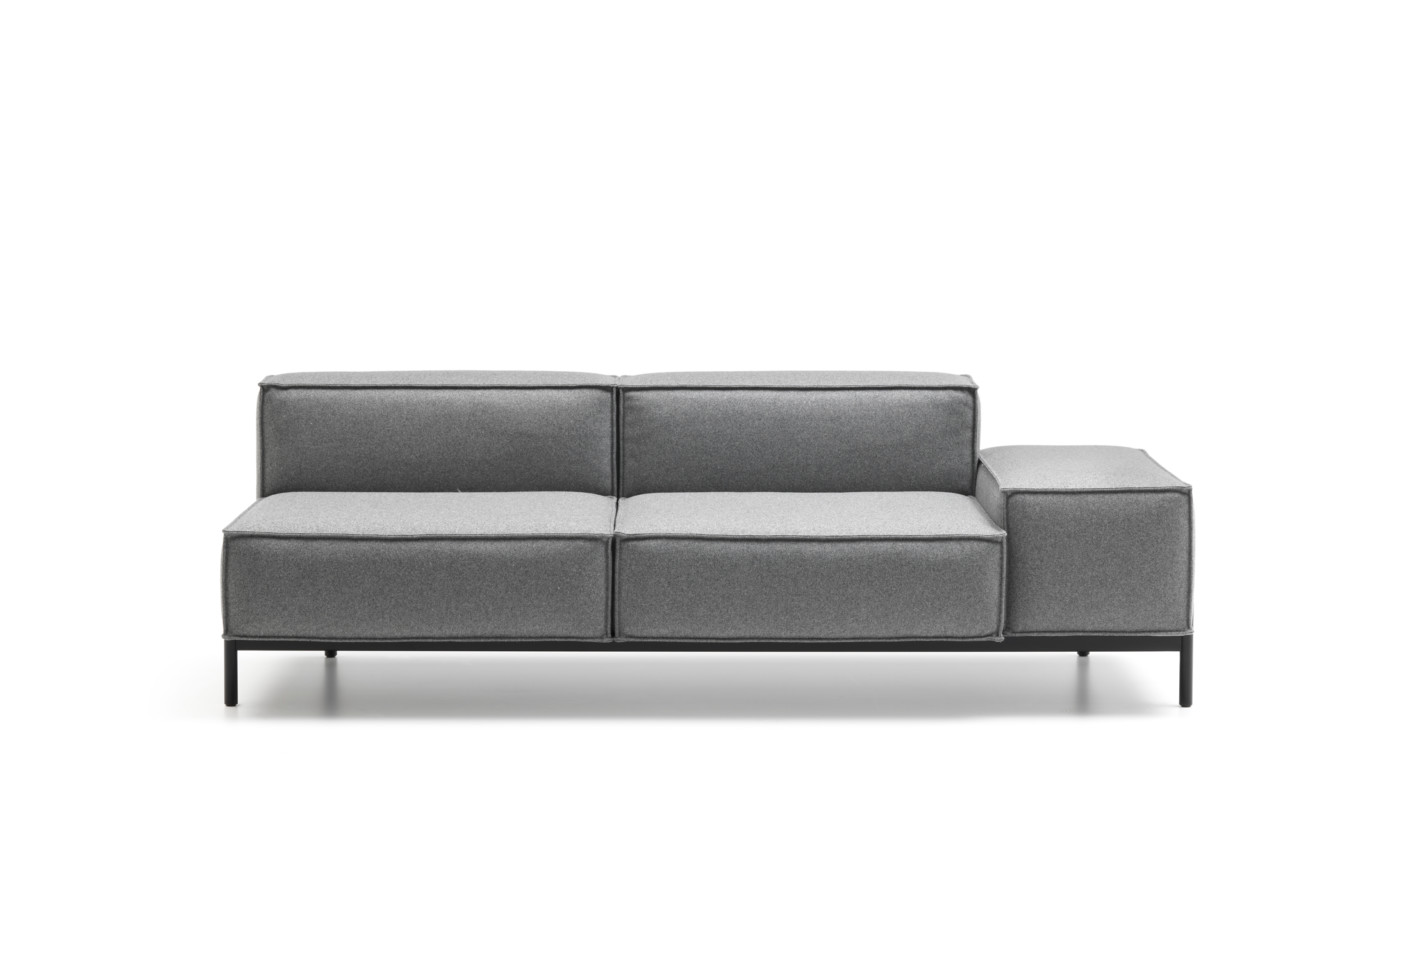 ds 21 sofa von de sede stylepark. Black Bedroom Furniture Sets. Home Design Ideas